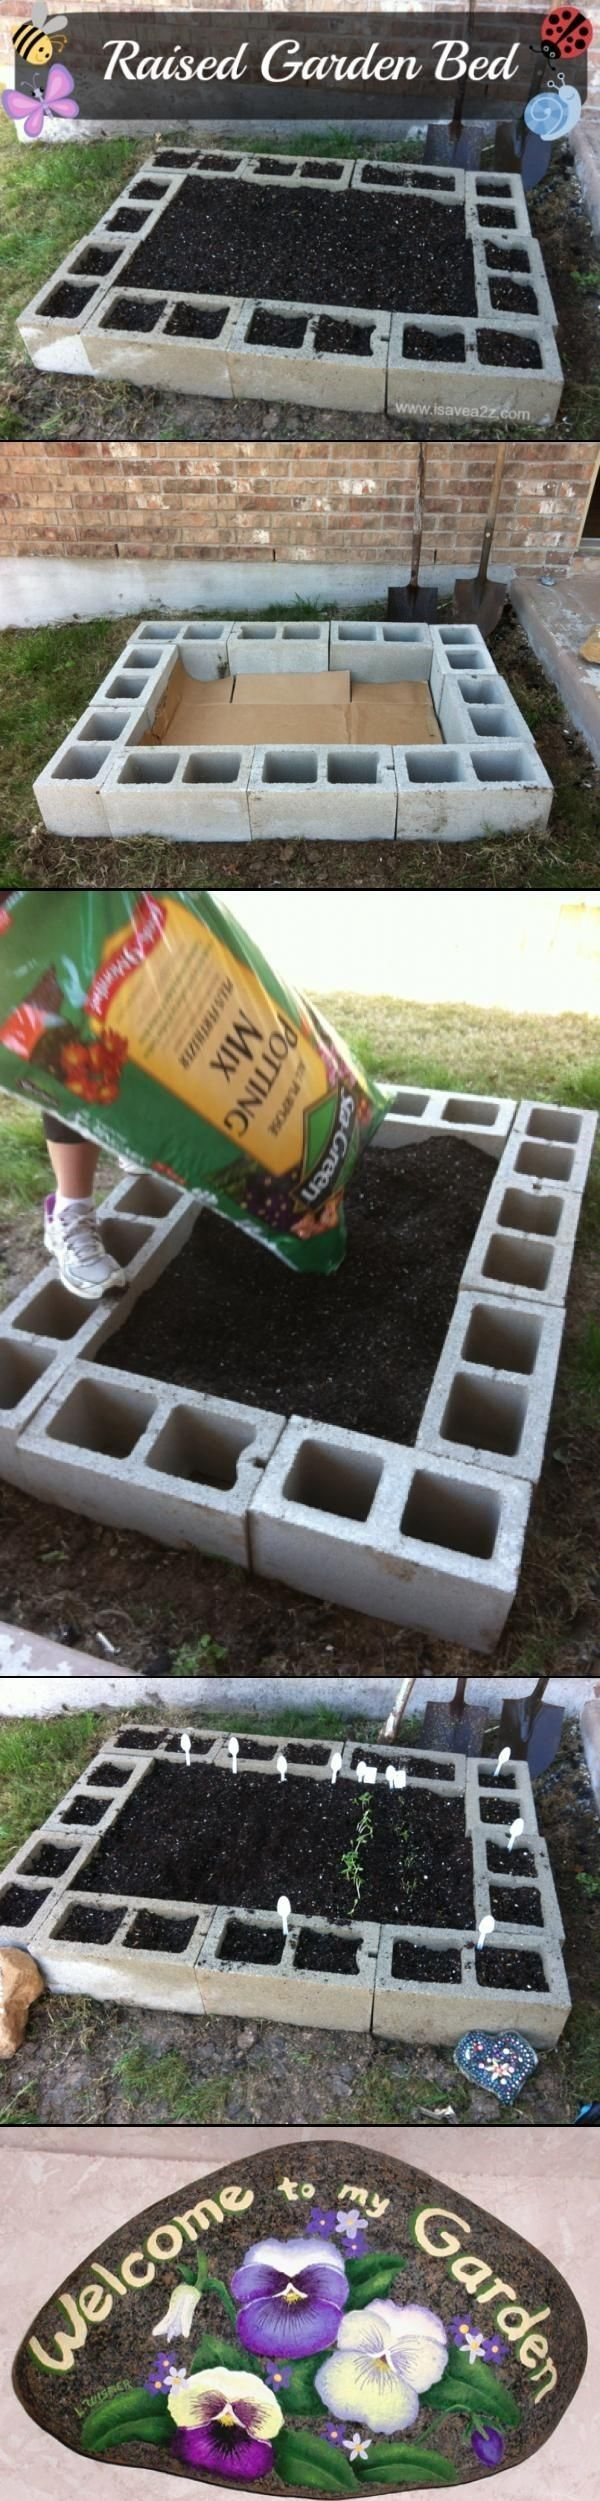 I did this. My suggestion would be to add cardboard or something up the sides to hold water. My garden did SO WELL, but it dried out easily. Also, in the individual holes, I planted herbs, green peppers and zucchini. They did excellent also!! - Garden Ideas